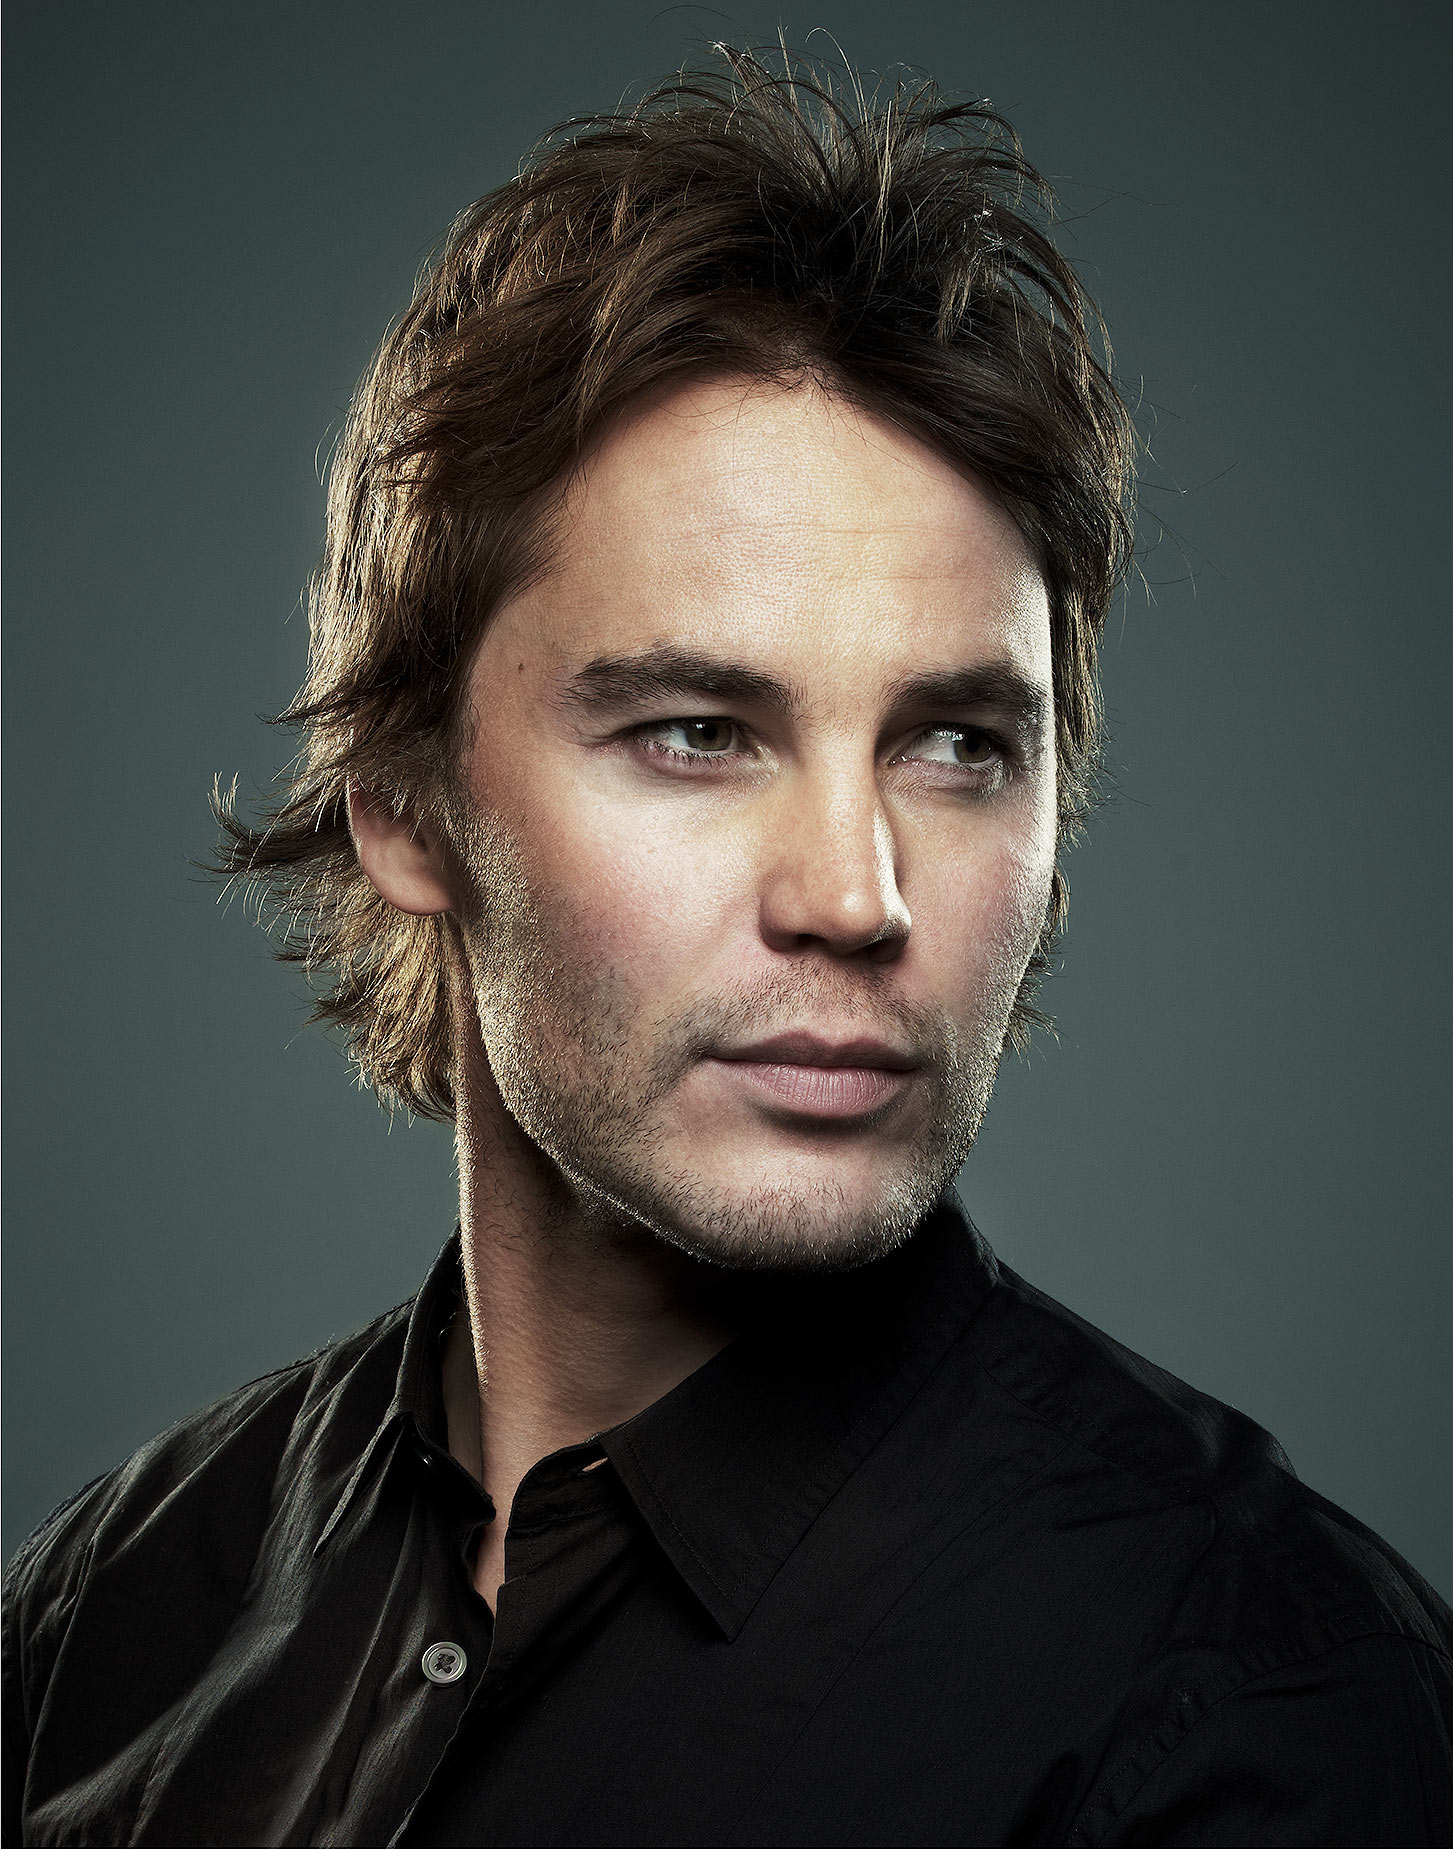 Taylor-Kitsch-by-Robert-Ascroft-9.jpg